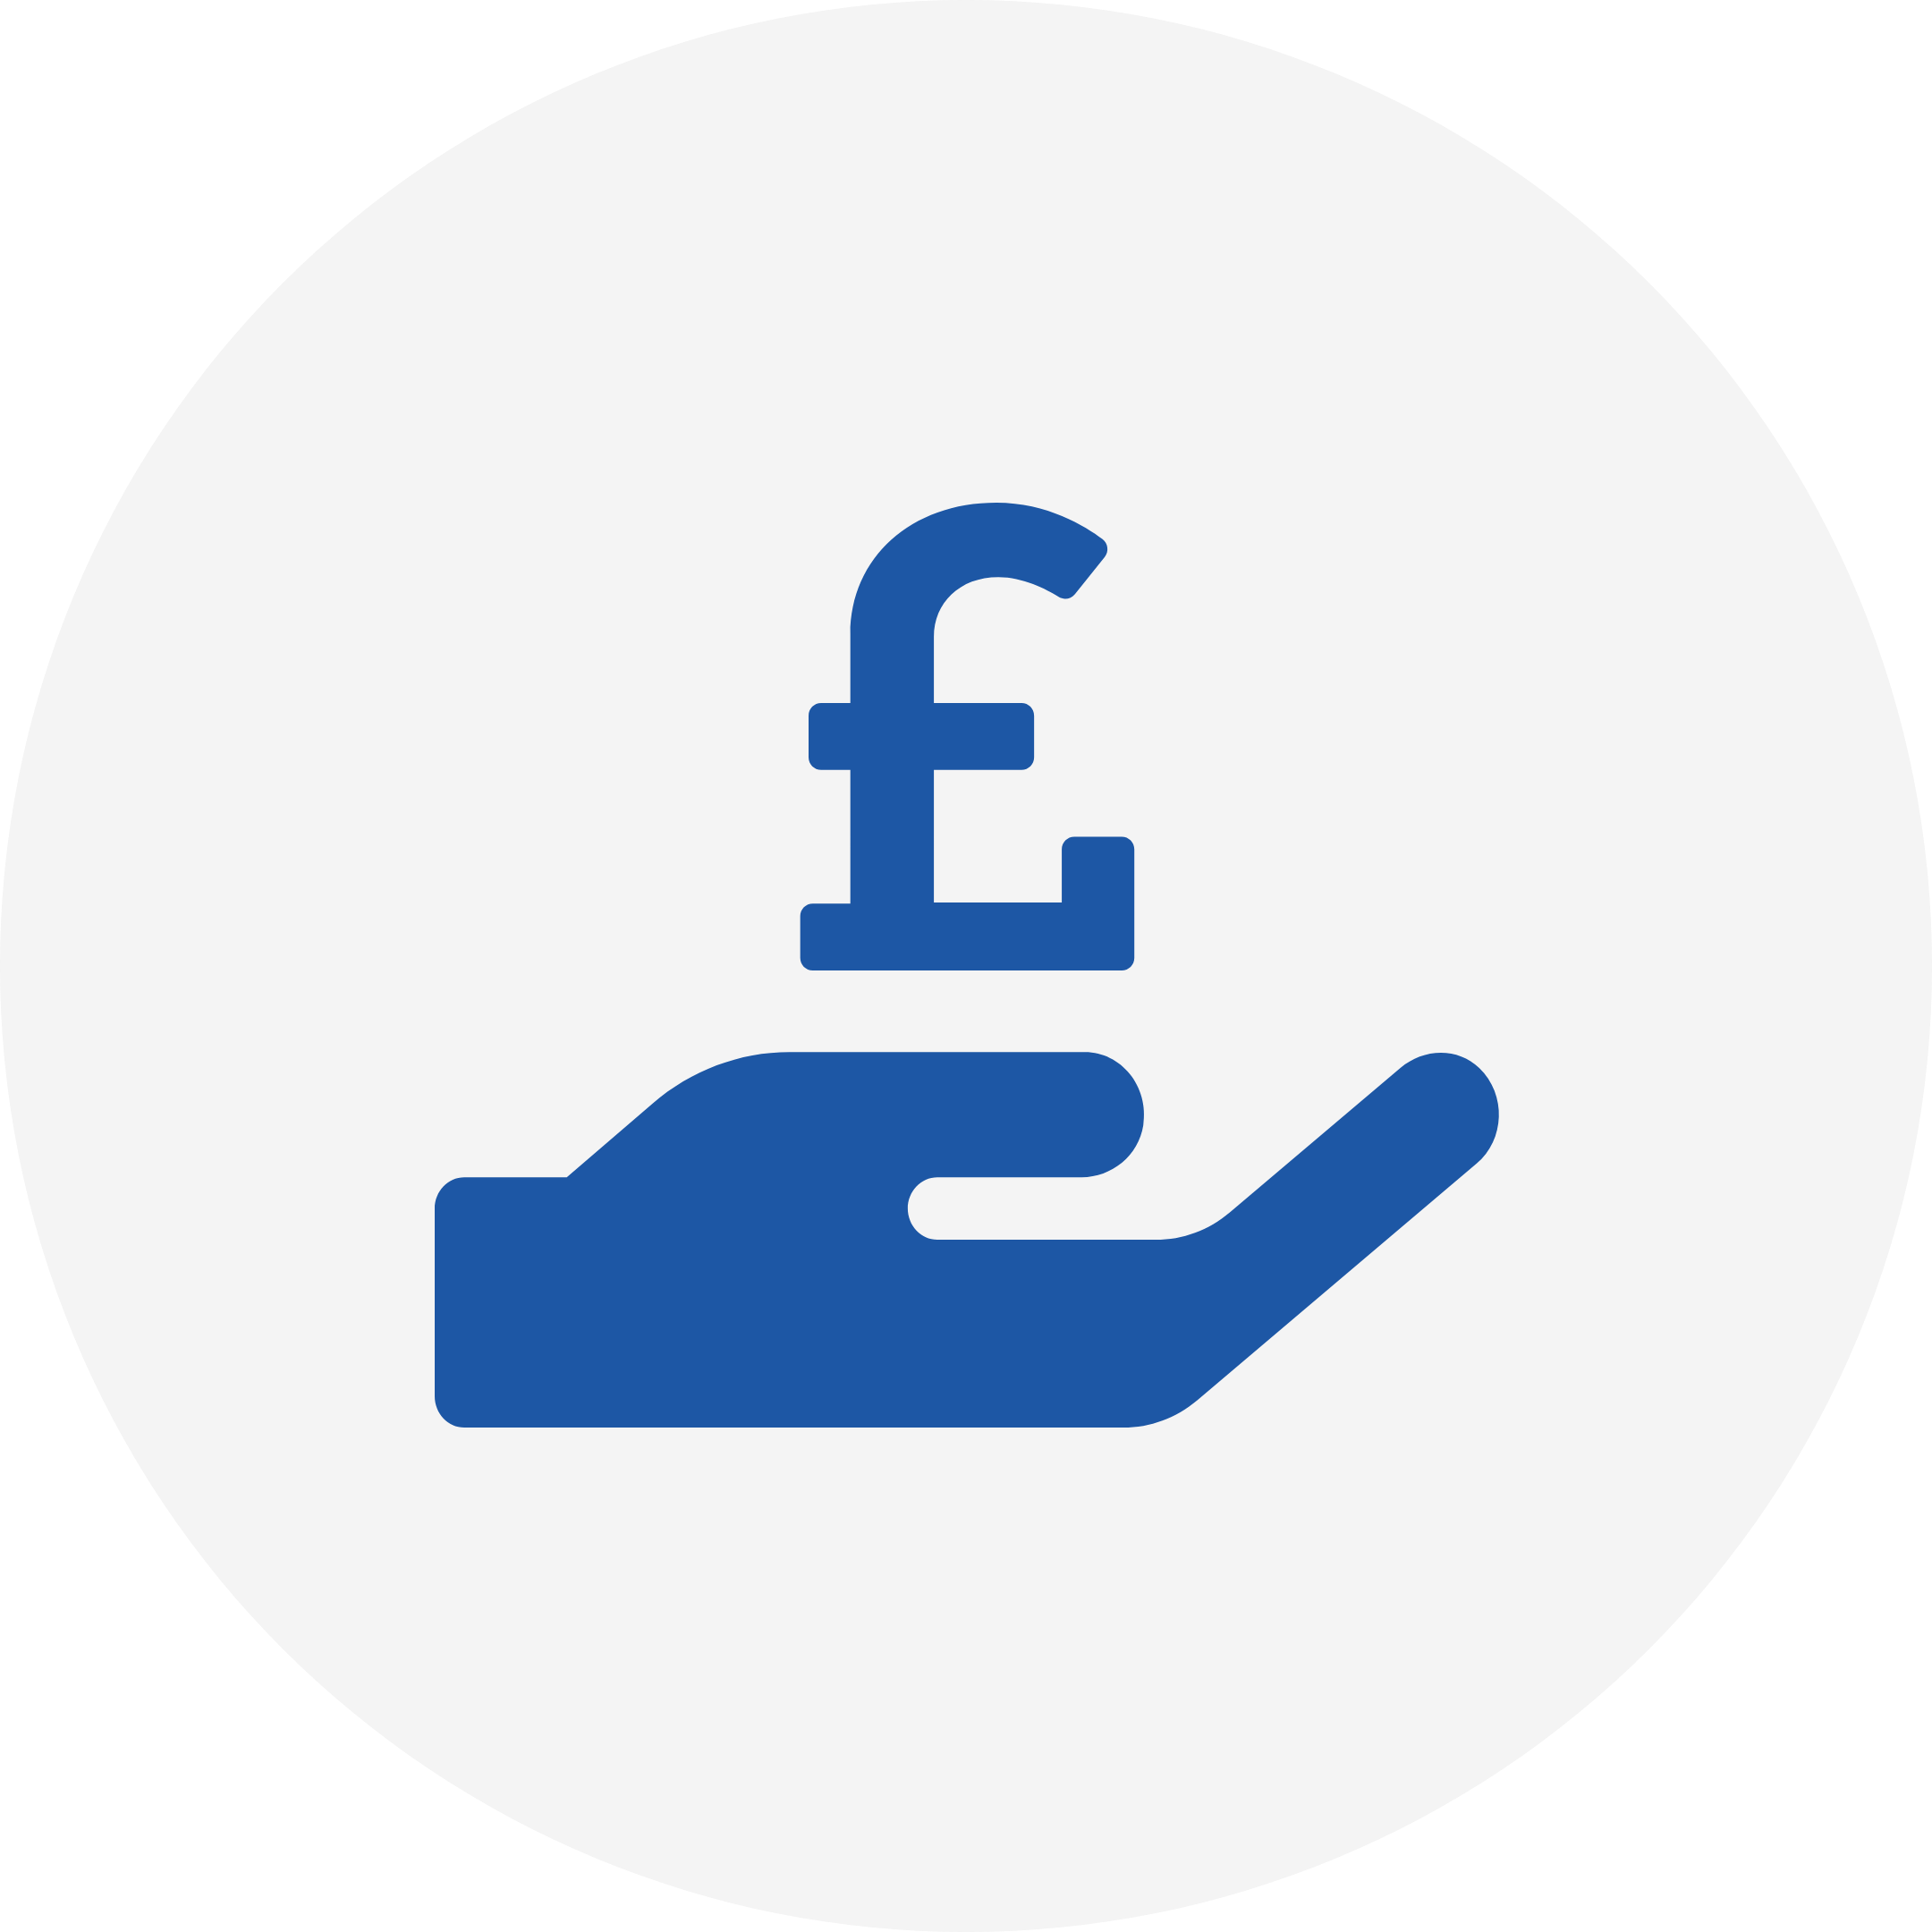 New revenue stream<br><small>From £1k to £30k+ profit per project</small></br>